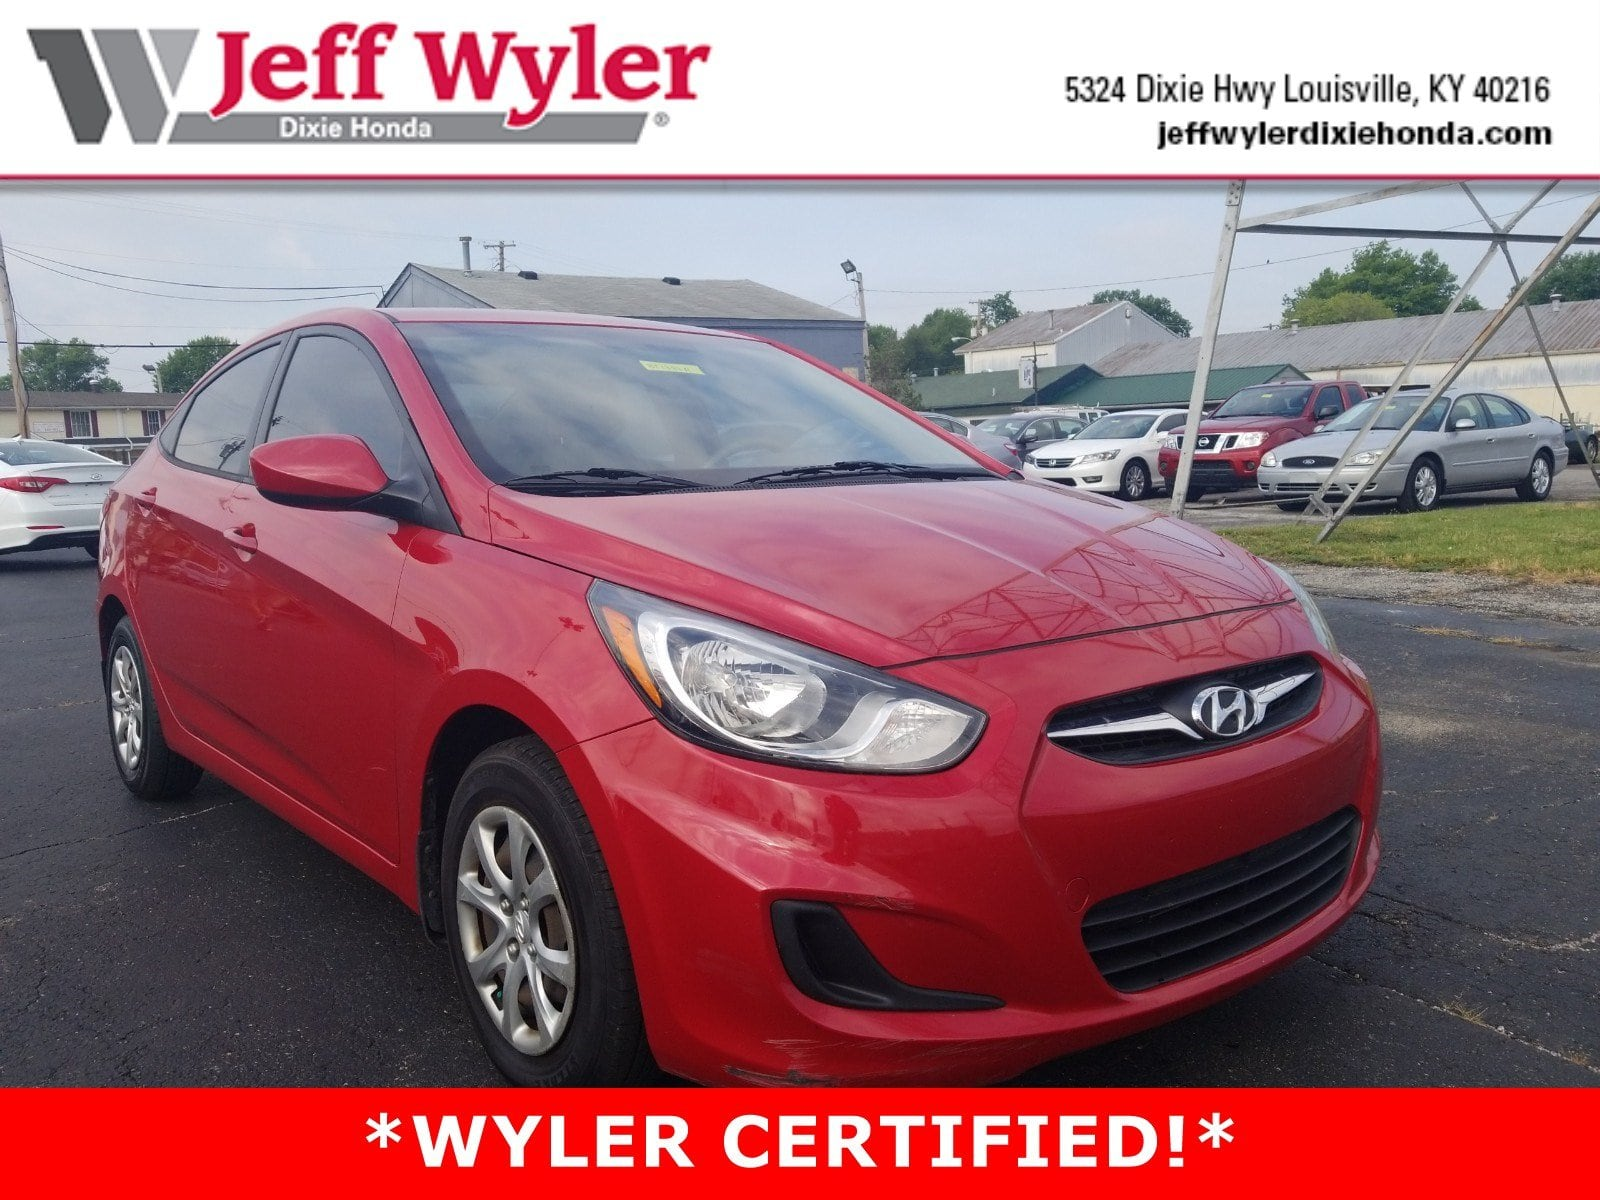 Jeff Wyler Used Cars Awesome Cheap Used Cars for Sale In Cincinnati Louisville Columbus and